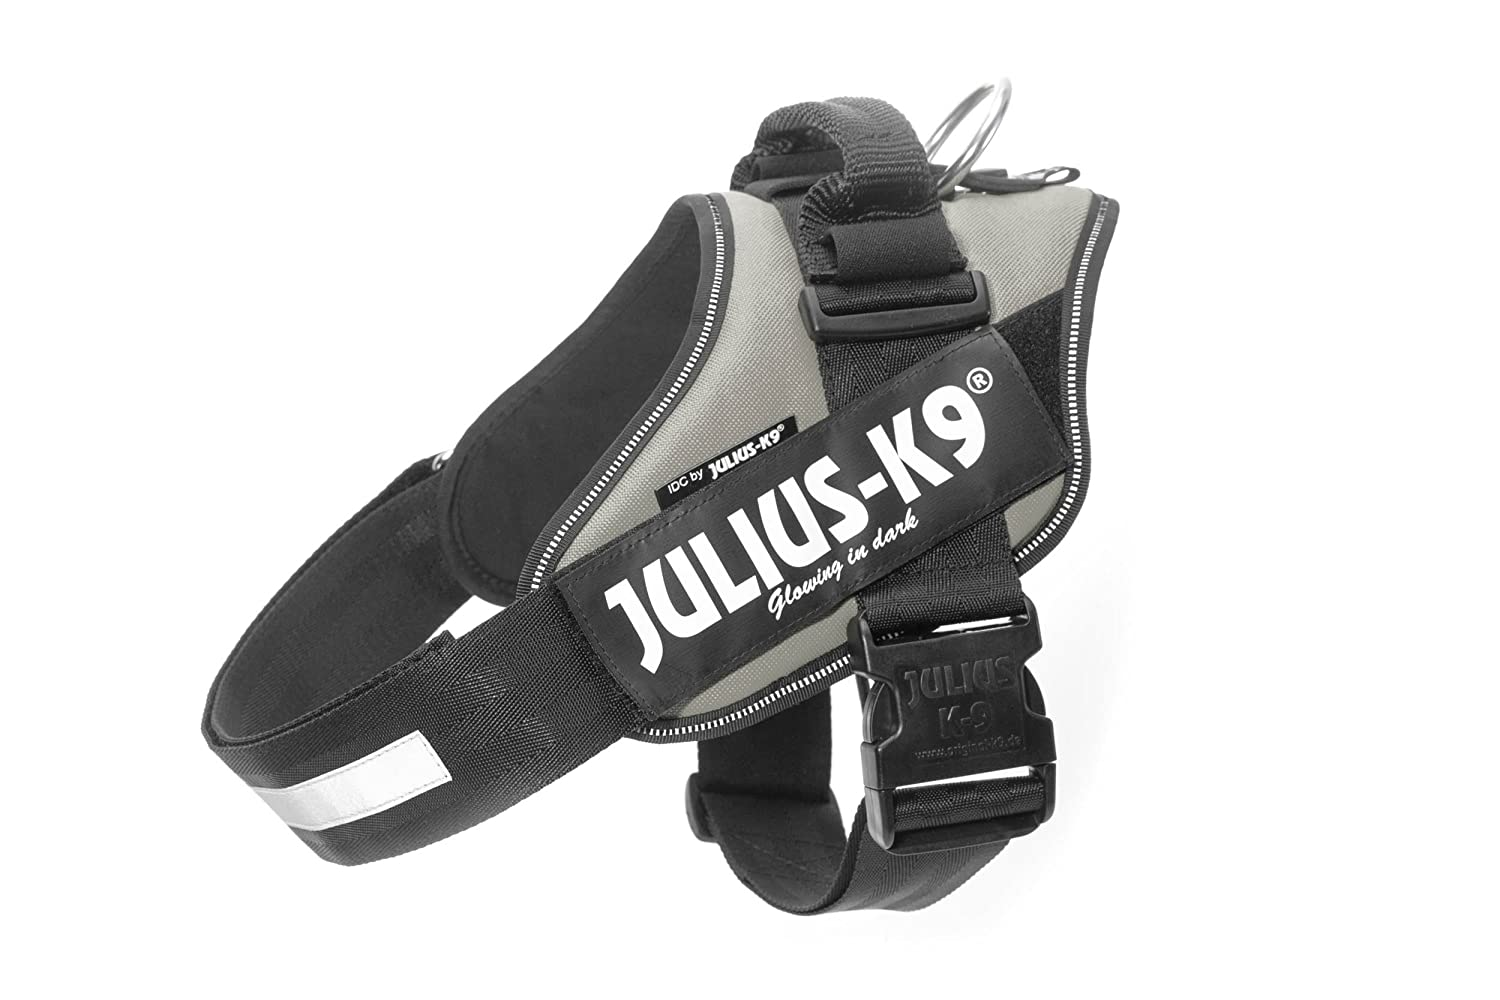 Julius-K9 16IDC-SIL-0 IDC Power Harness, Tamaño 0, Plata K9-Sport